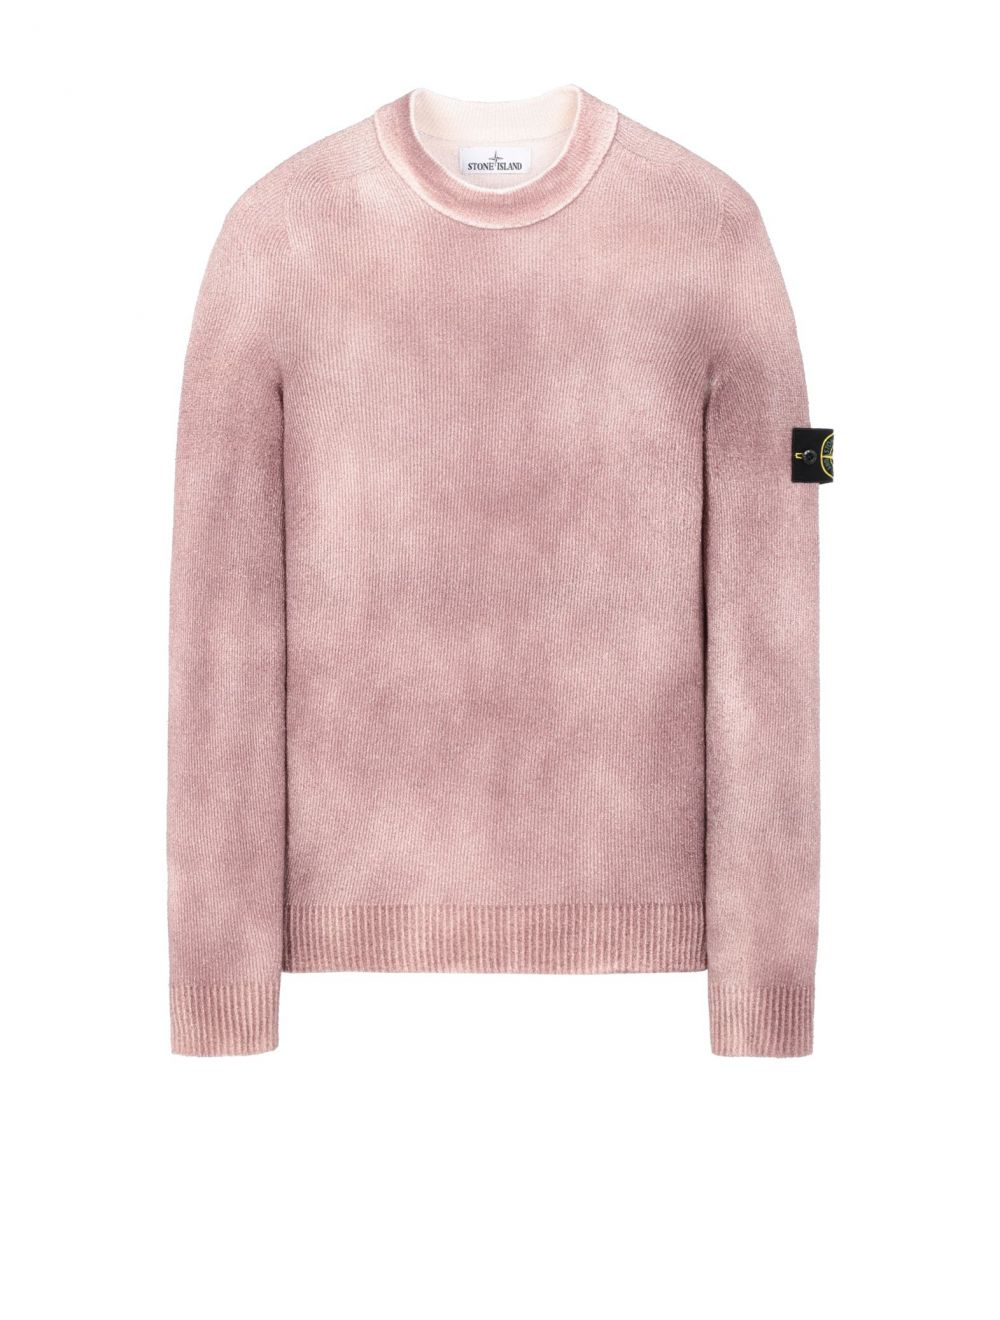 Stone Island Hand Sprayed Treatment  Knitted Crewneck - Mahogany Brown